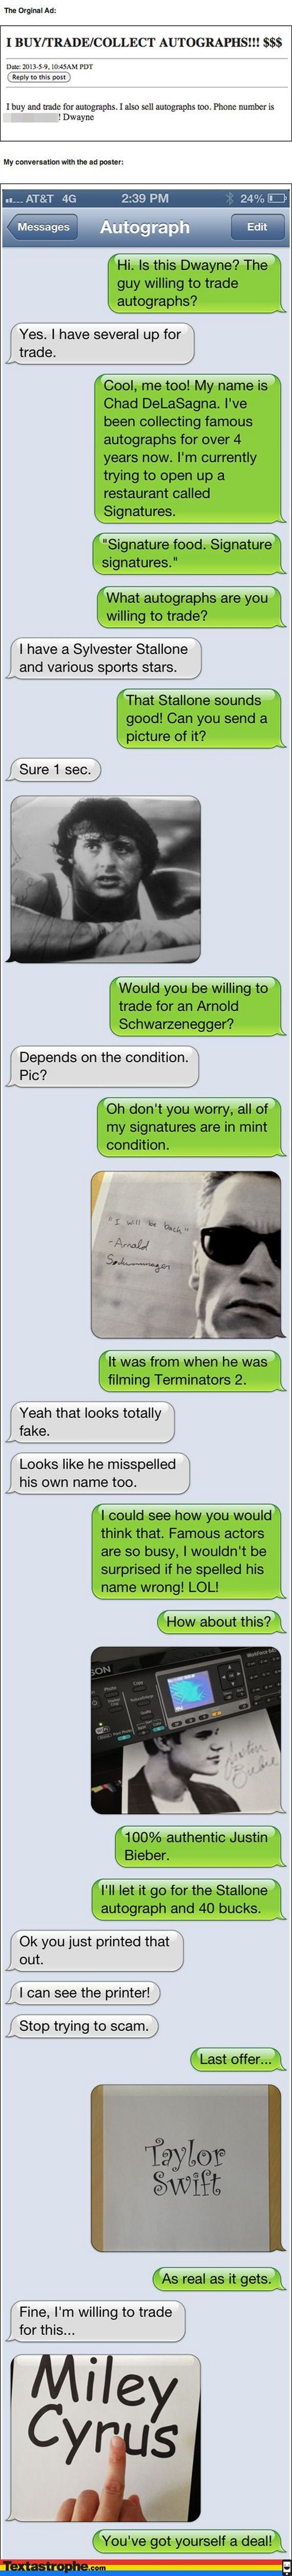 Awesome-Trolling